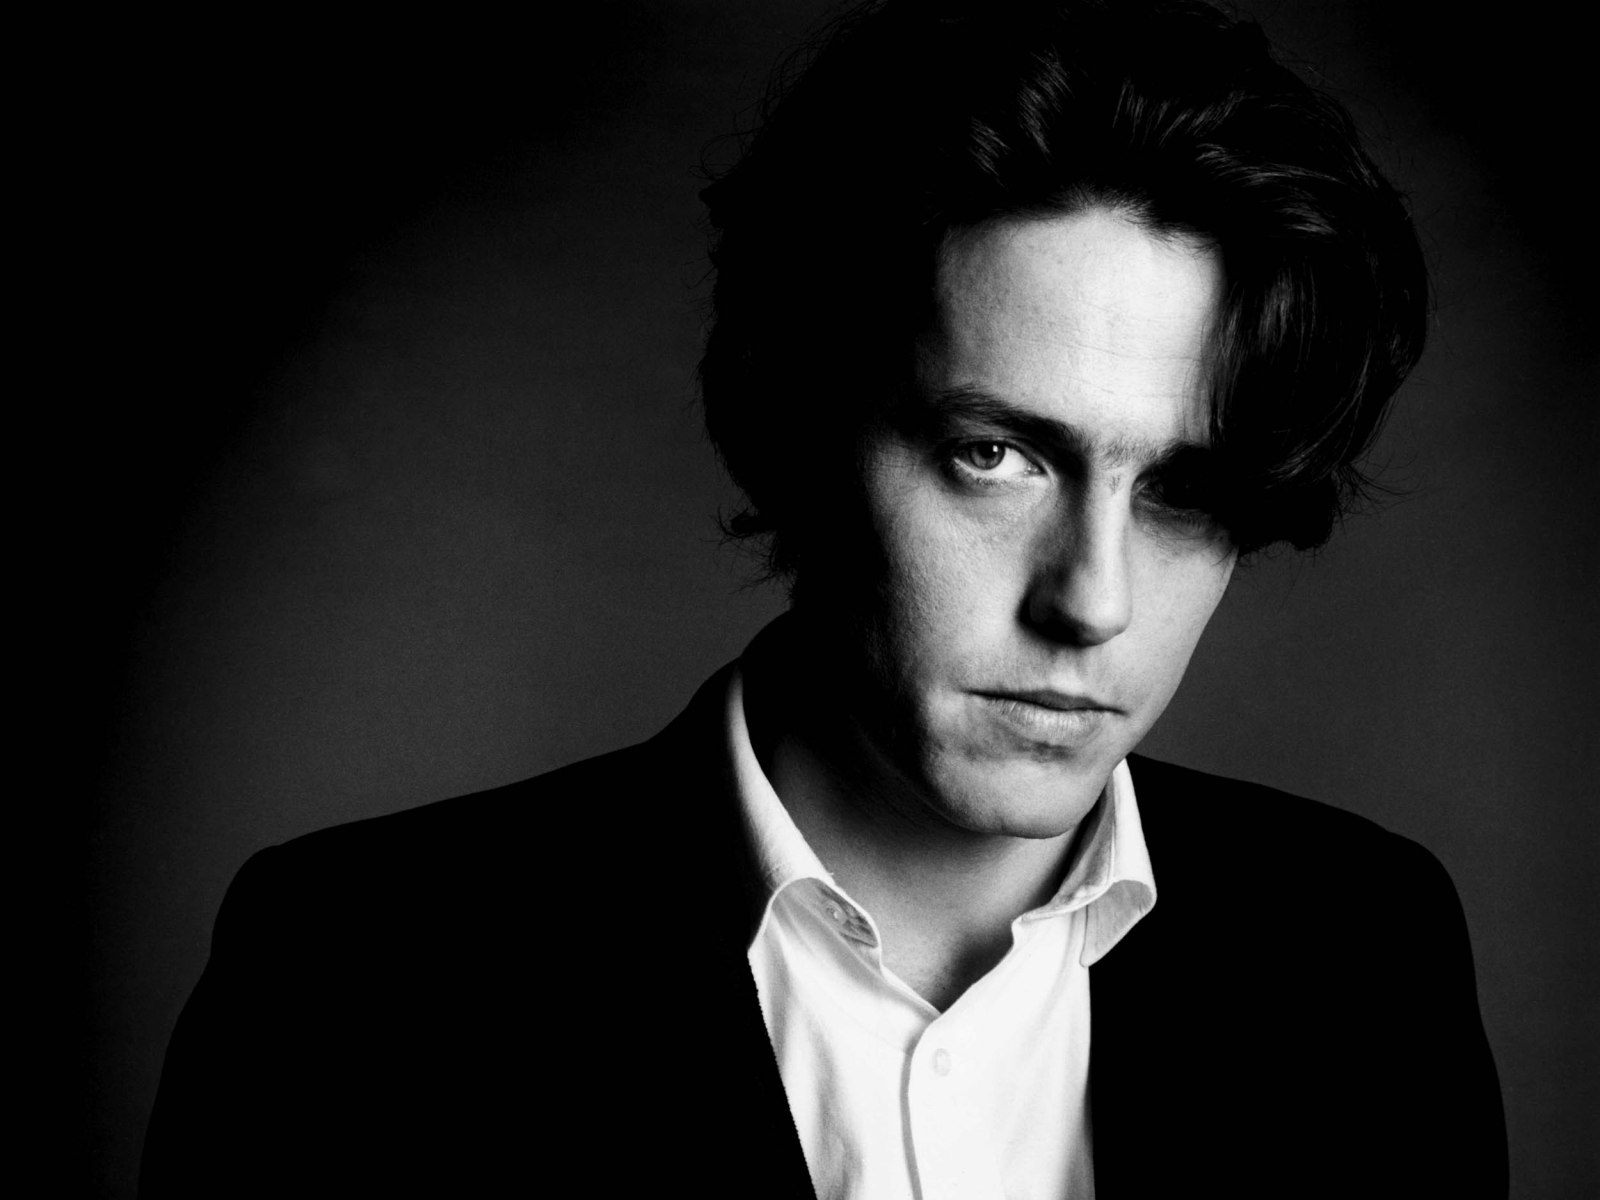 monochrome hugh grant wallpaper 55561